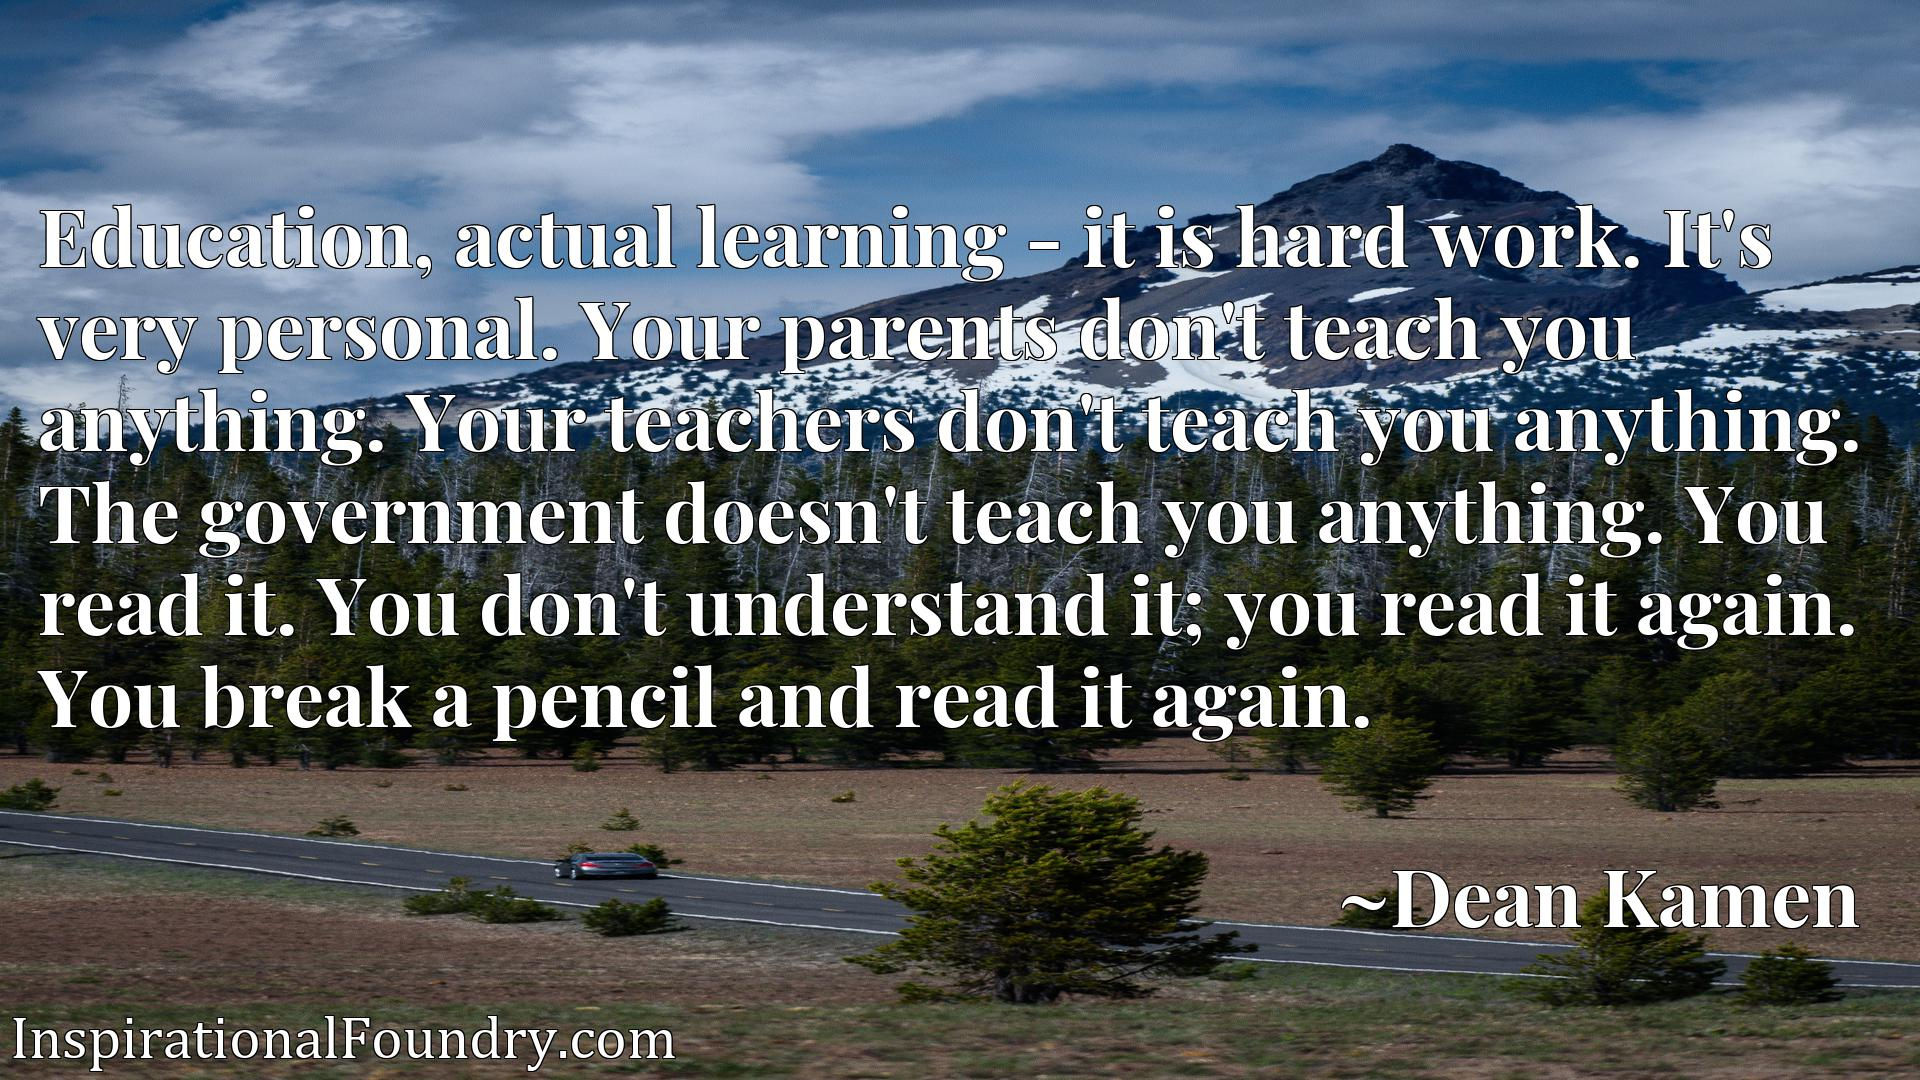 Quote Picture :Education, actual learning - it is hard work. It's very personal. Your parents don't teach you anything. Your teachers don't teach you anything. The government doesn't teach you anything. You read it. You don't understand it; you read it again. You break a pencil and read it again.